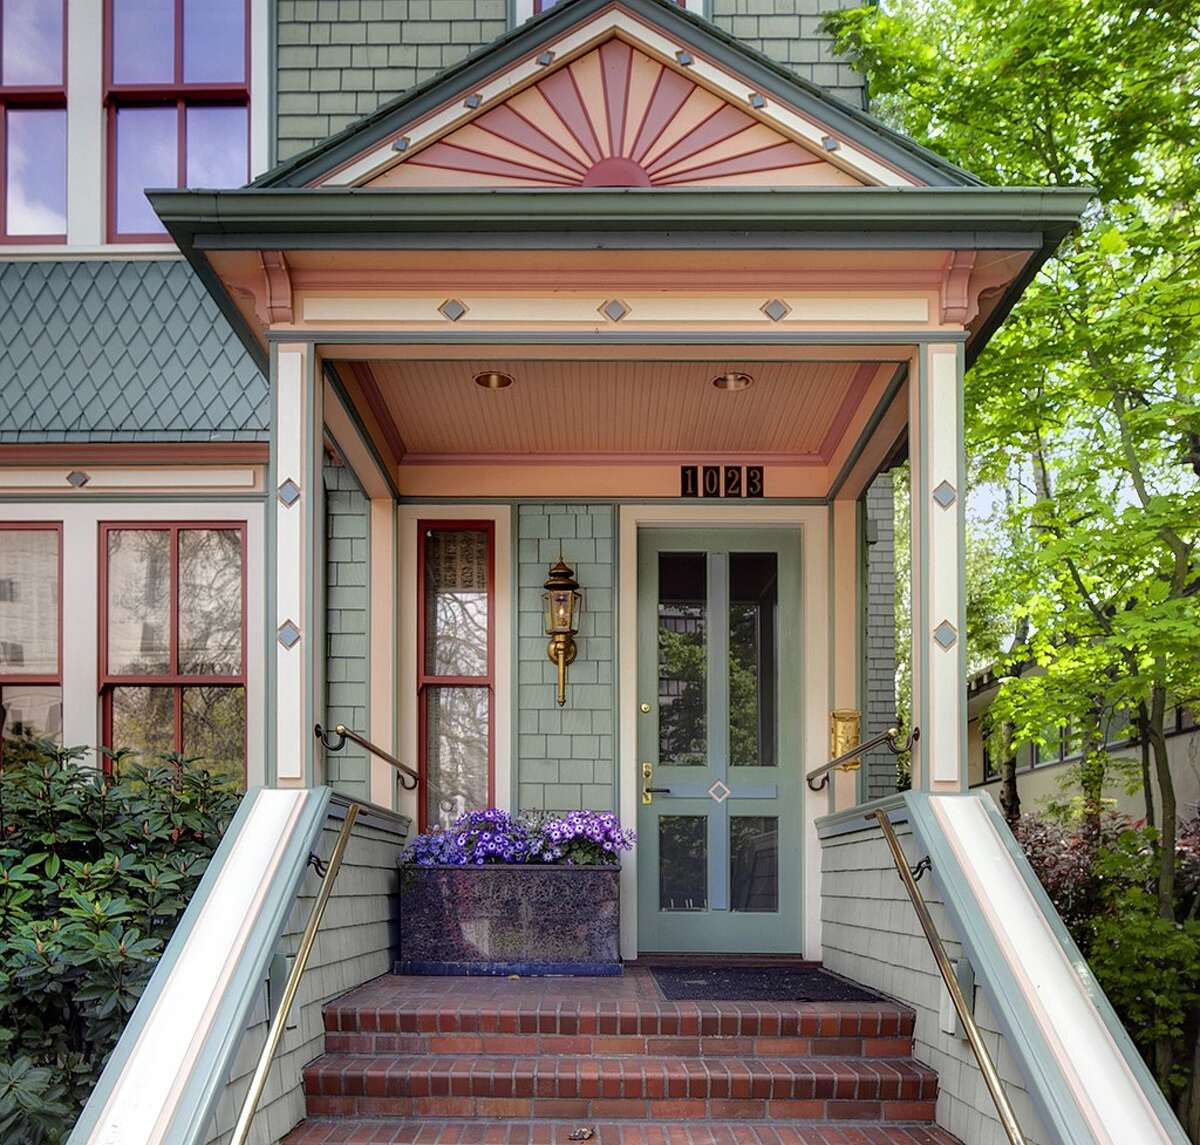 Front of 1023 Columbia St. The 3,800-square-foot Painted Lady, built in 1900, has four bedrooms, 2.5 bathrooms, a reception hall, offices, a library, three fireplaces, built-in shelves, wood paneling and a front porch on a 2,400-square-foot lot. It's listed for $2.68 million.